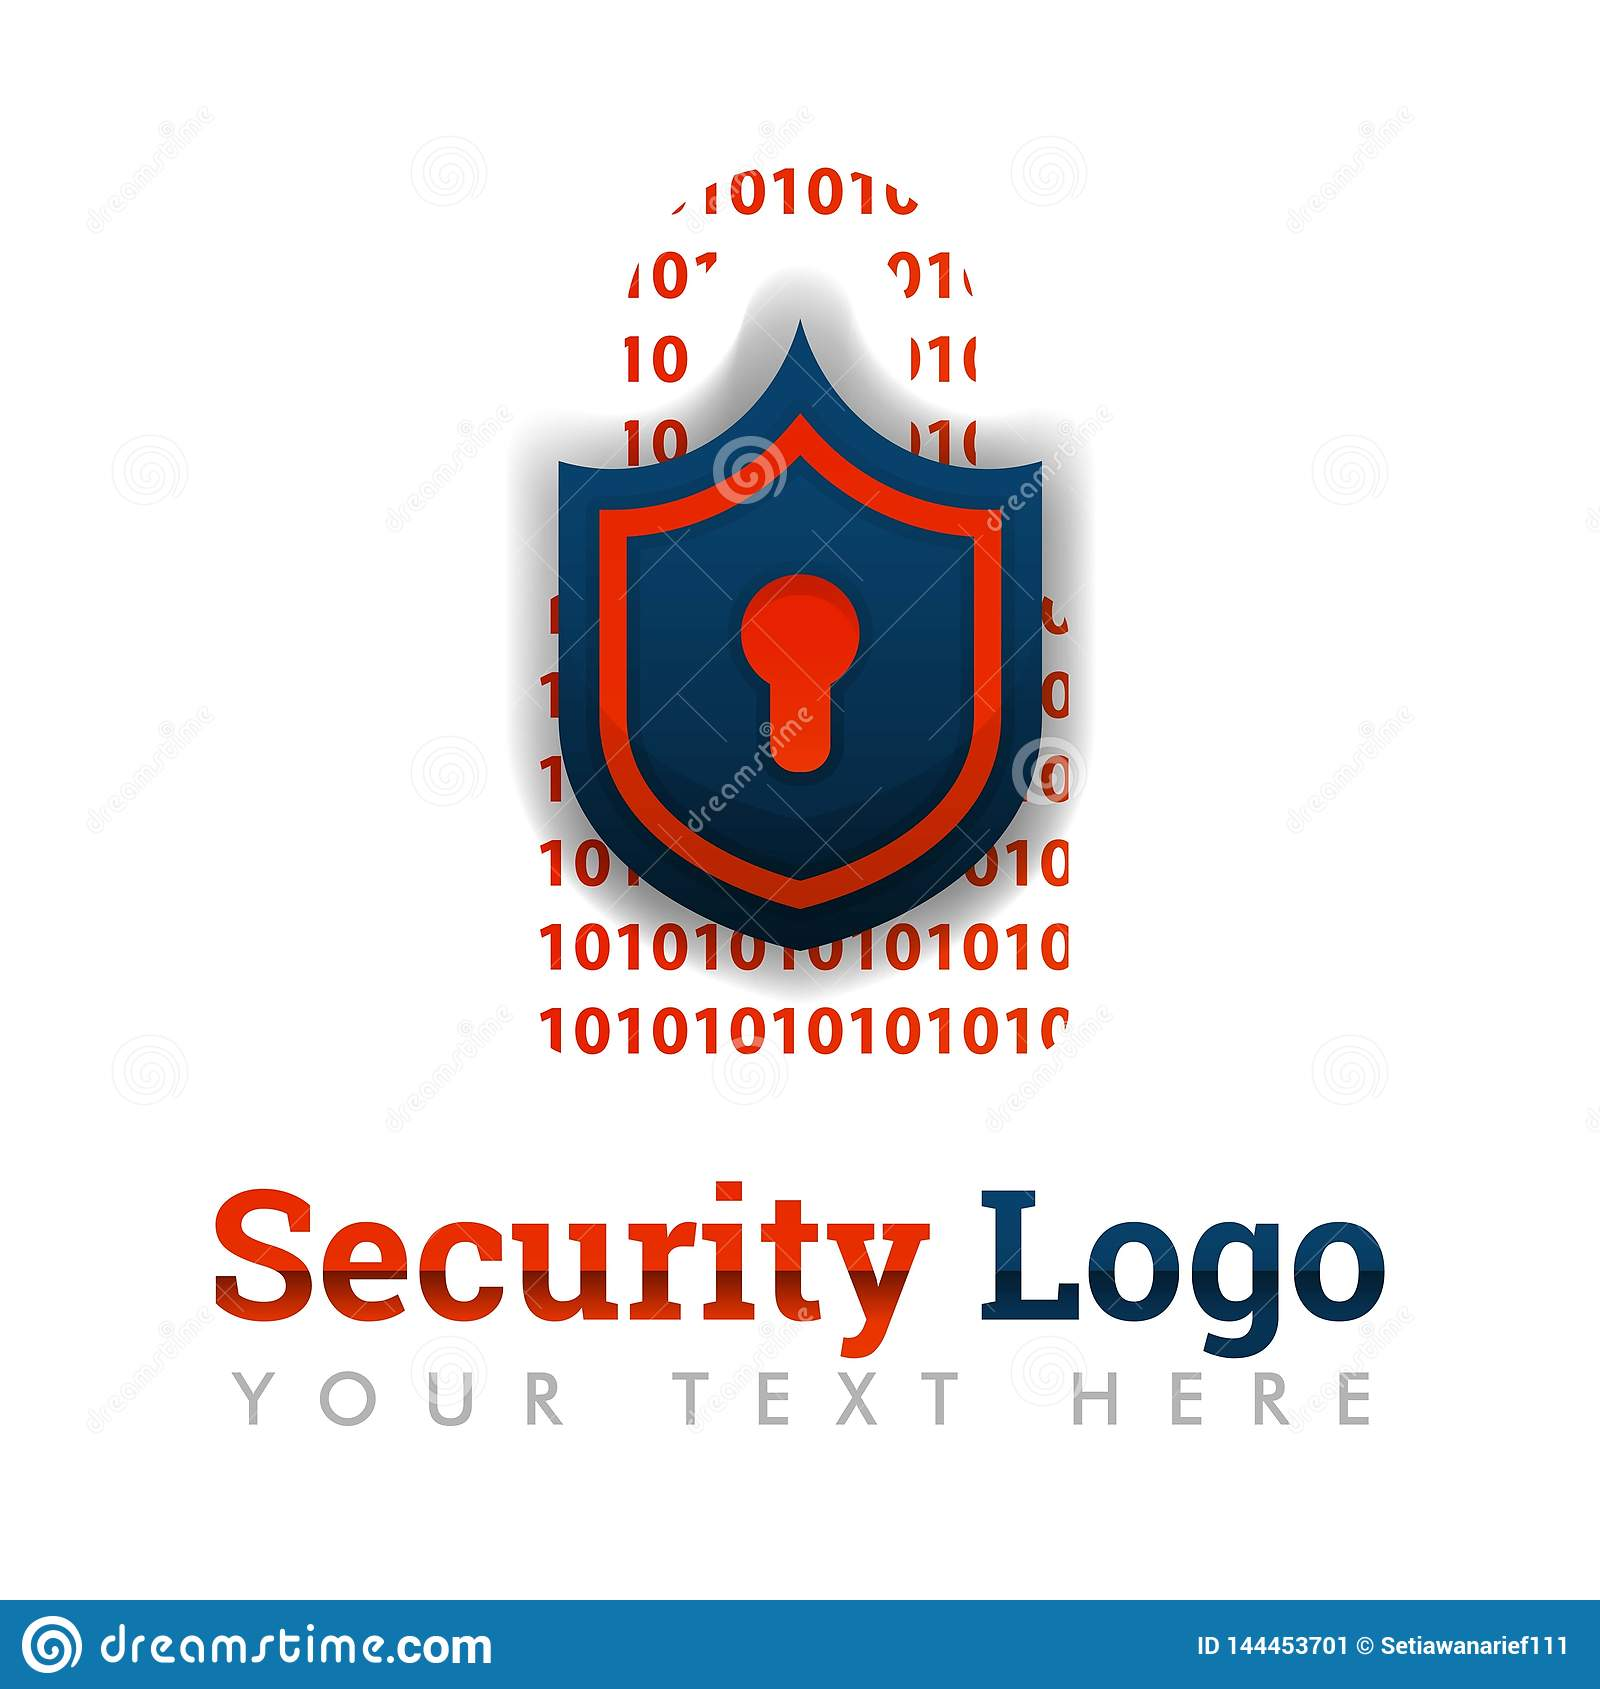 Security Logo Template For Security Software, Customer